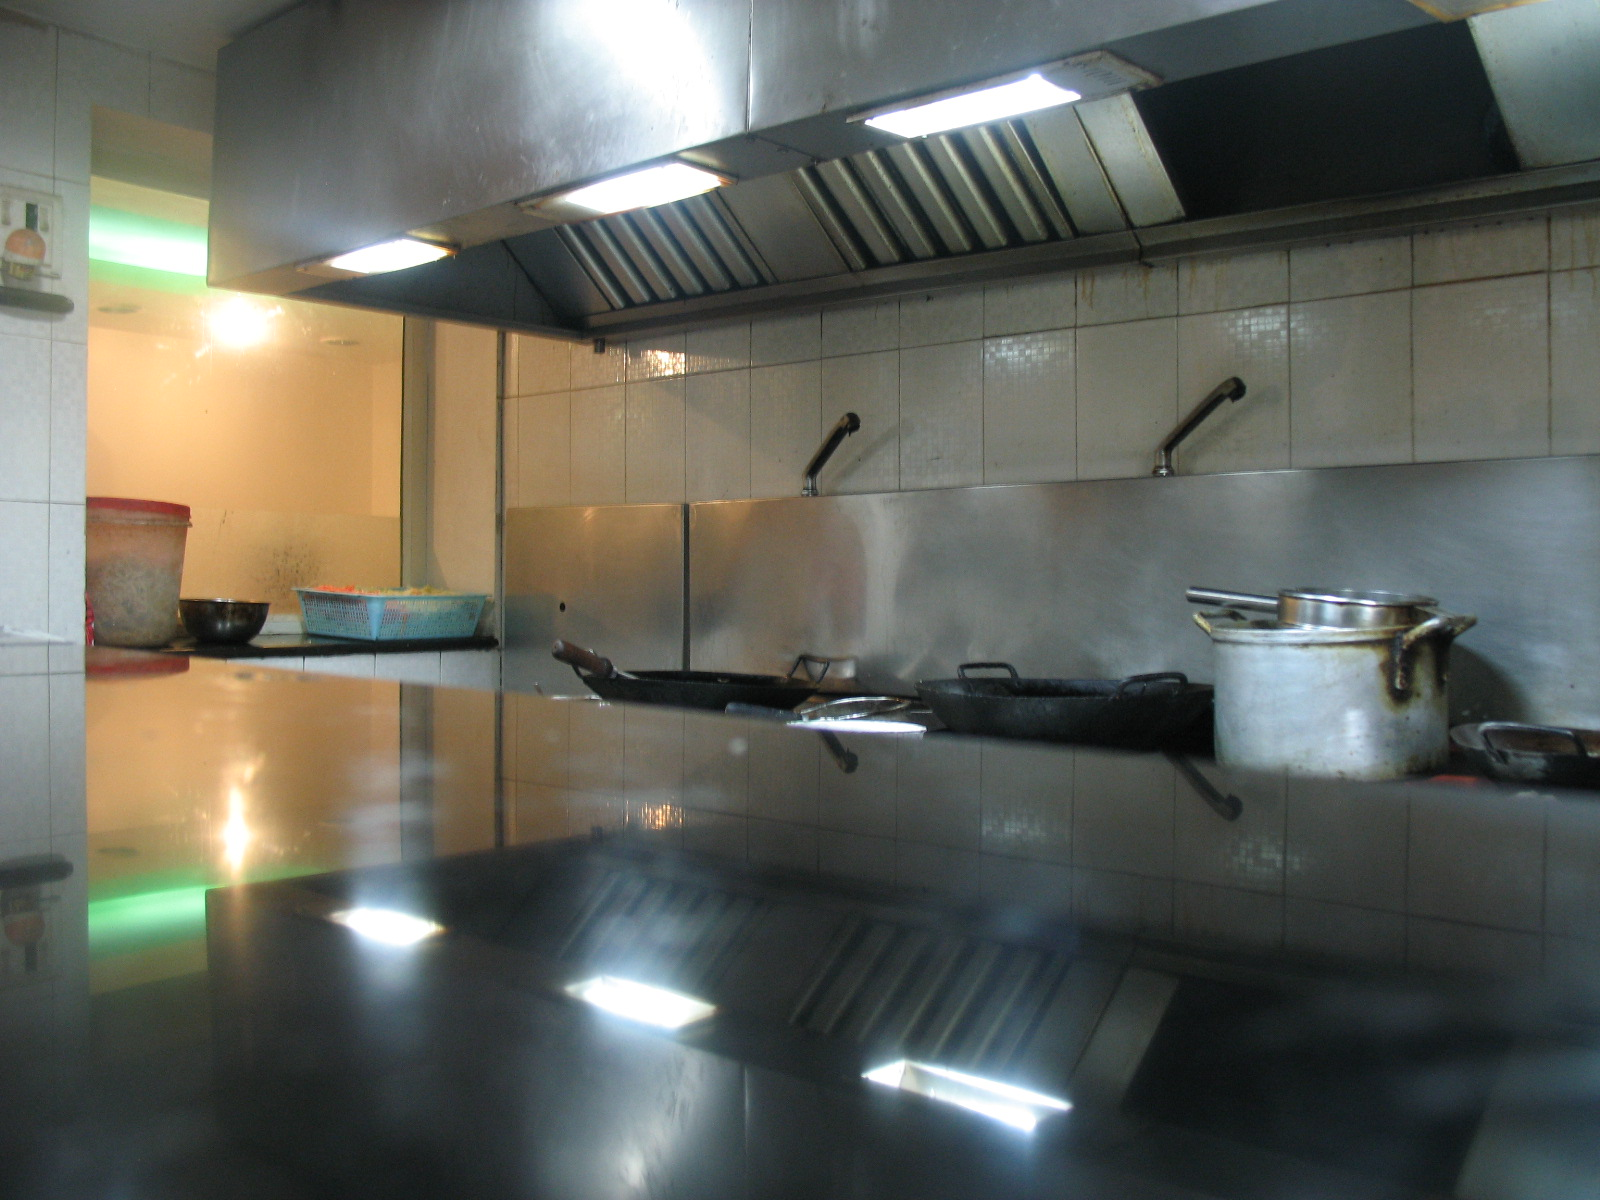 KRAZY KITCHEN - NAINITAL Photos, Images and Wallpapers - MouthShut.com